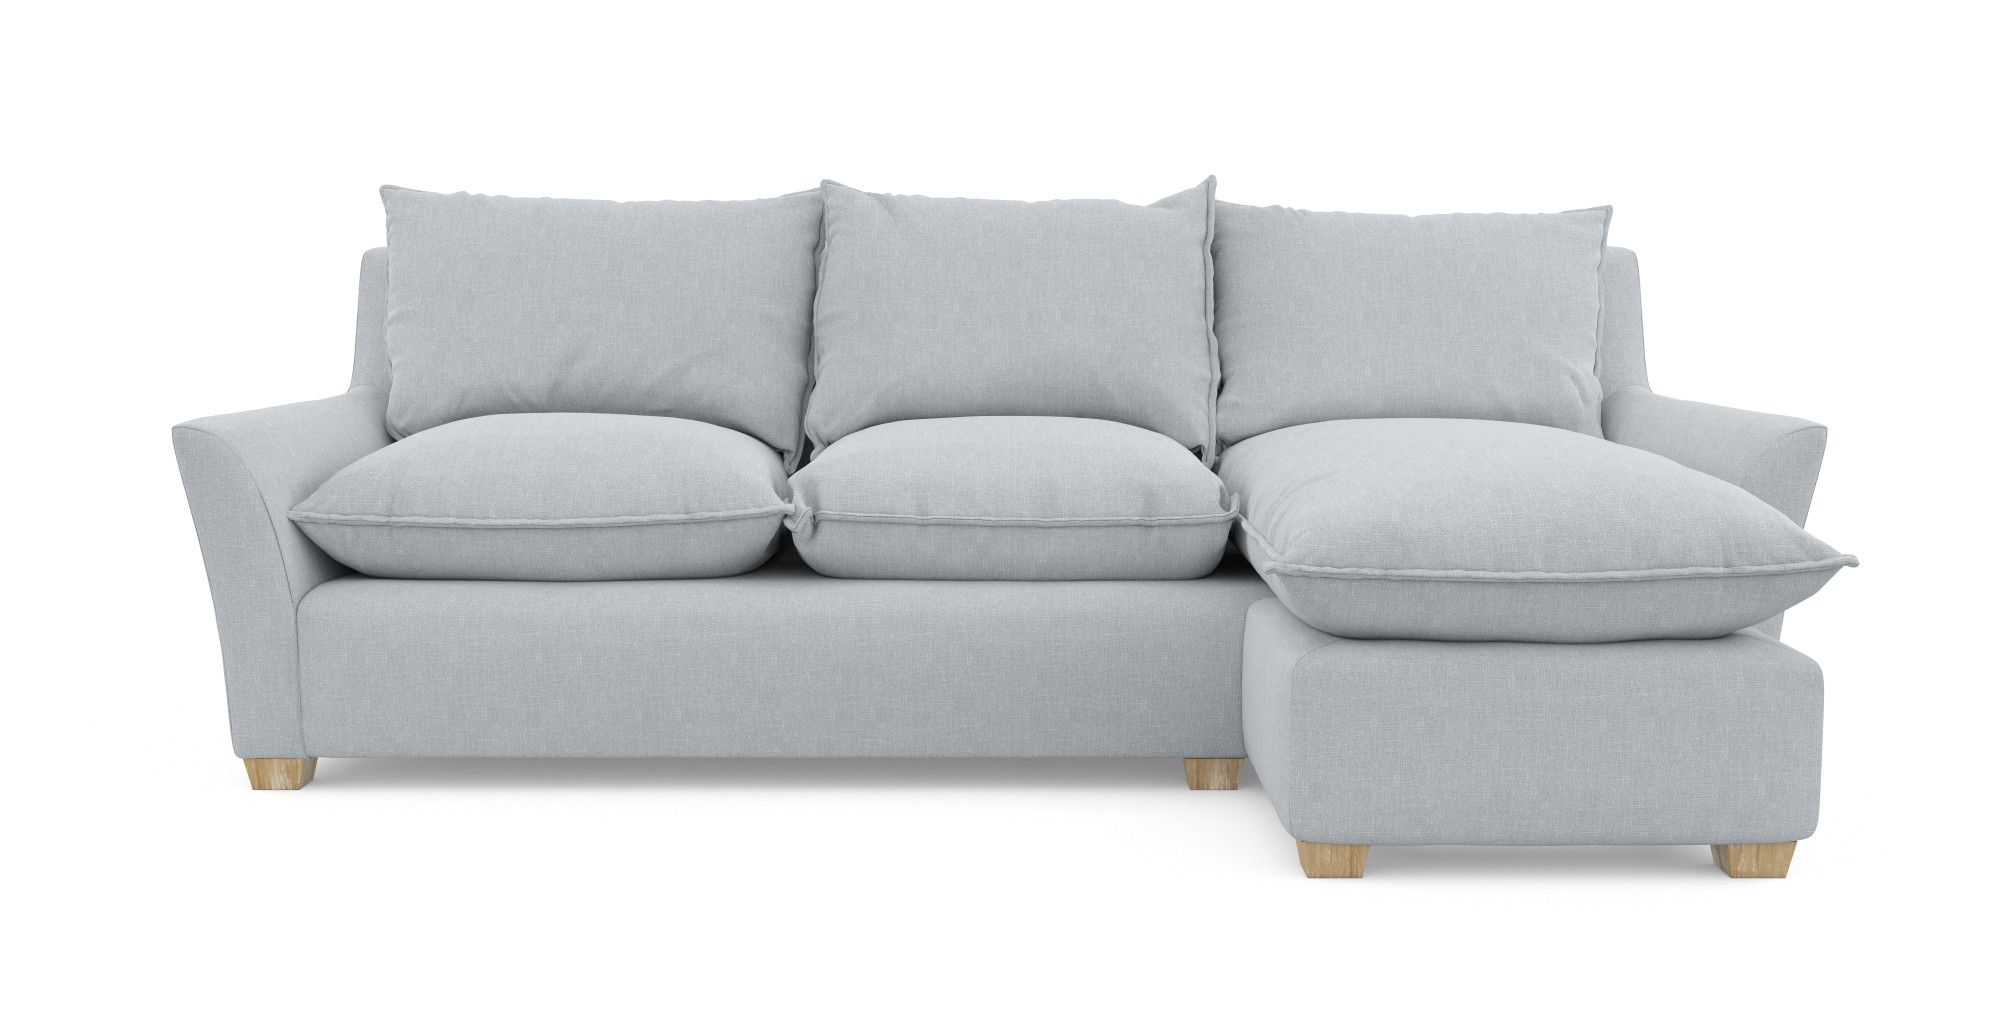 The Charleston 3 Seater Chaise Sofa is a stylishly plush piece with ...